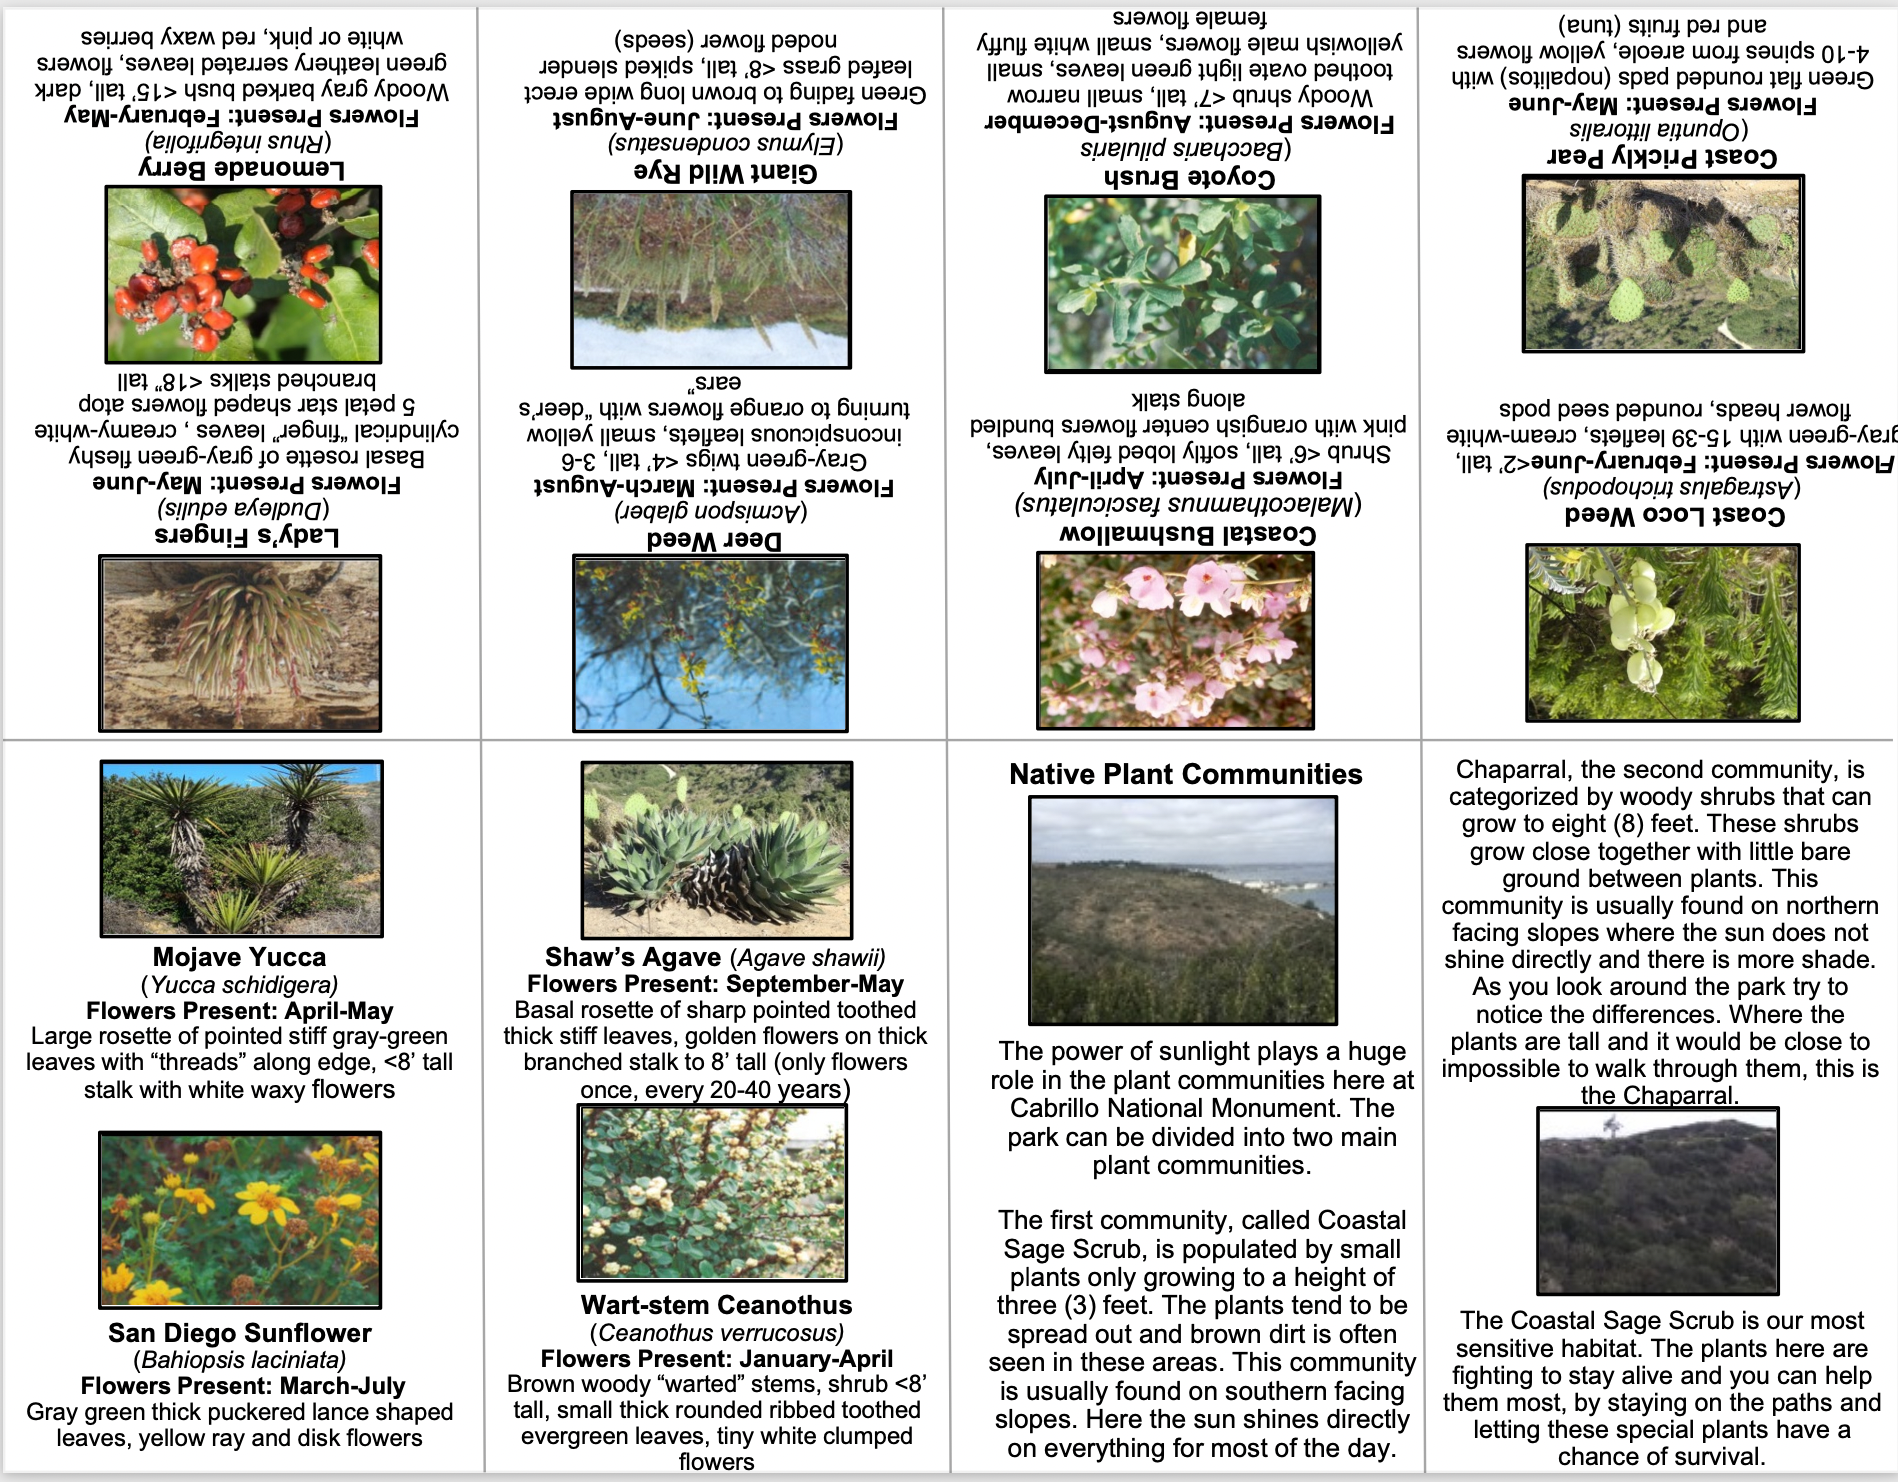 Text and images showing various plants at Cabrillo